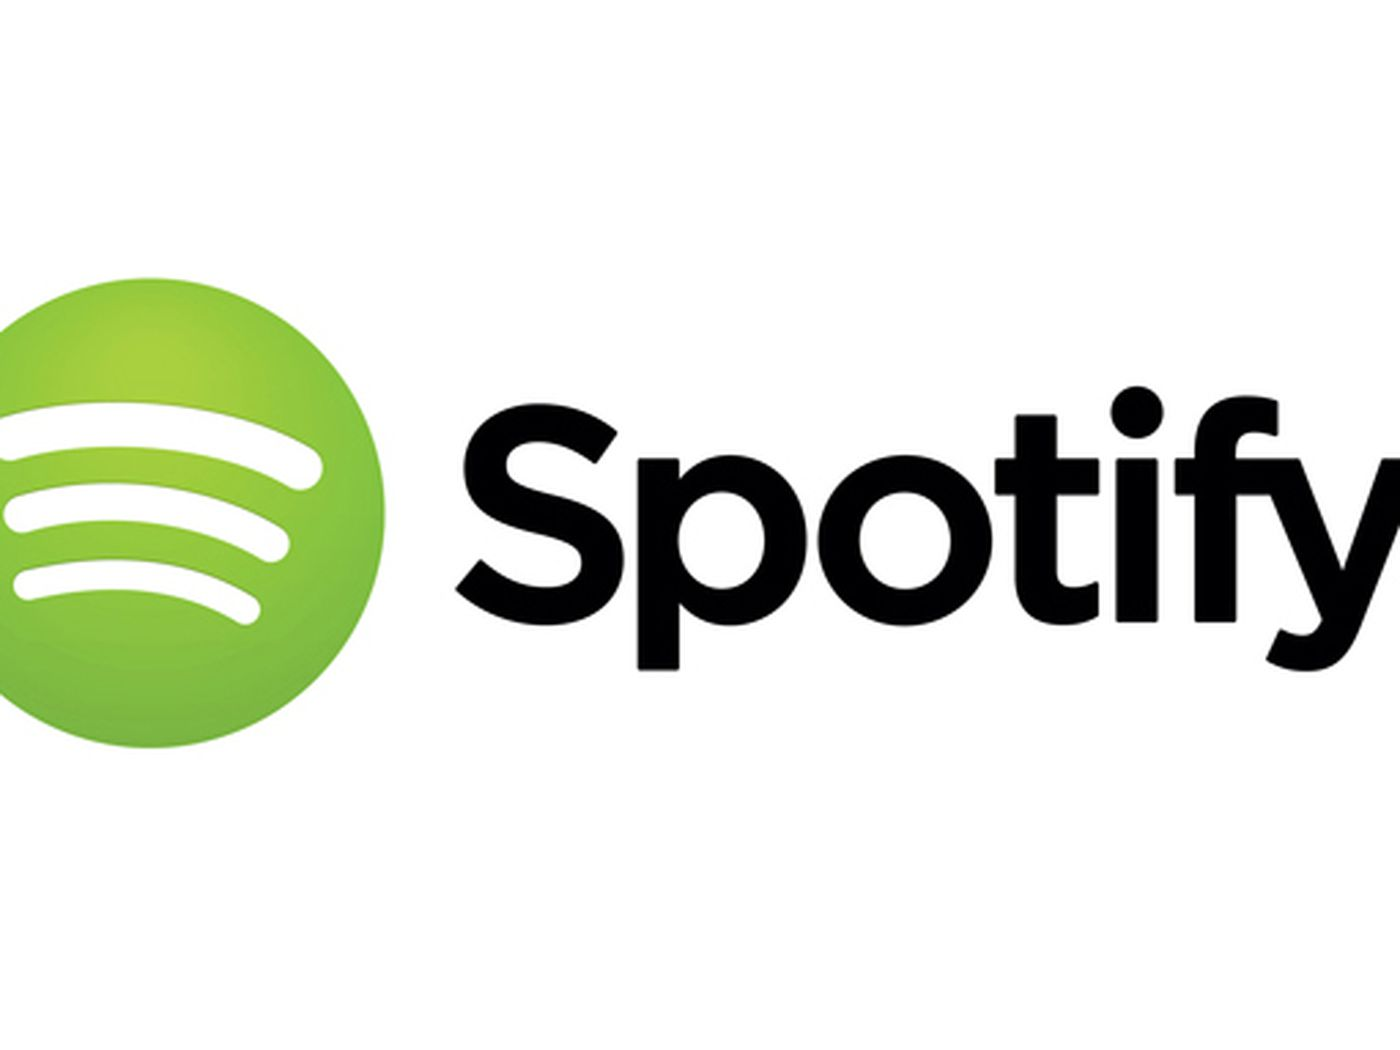 Spotify gets serious with a new, streamlined logo.